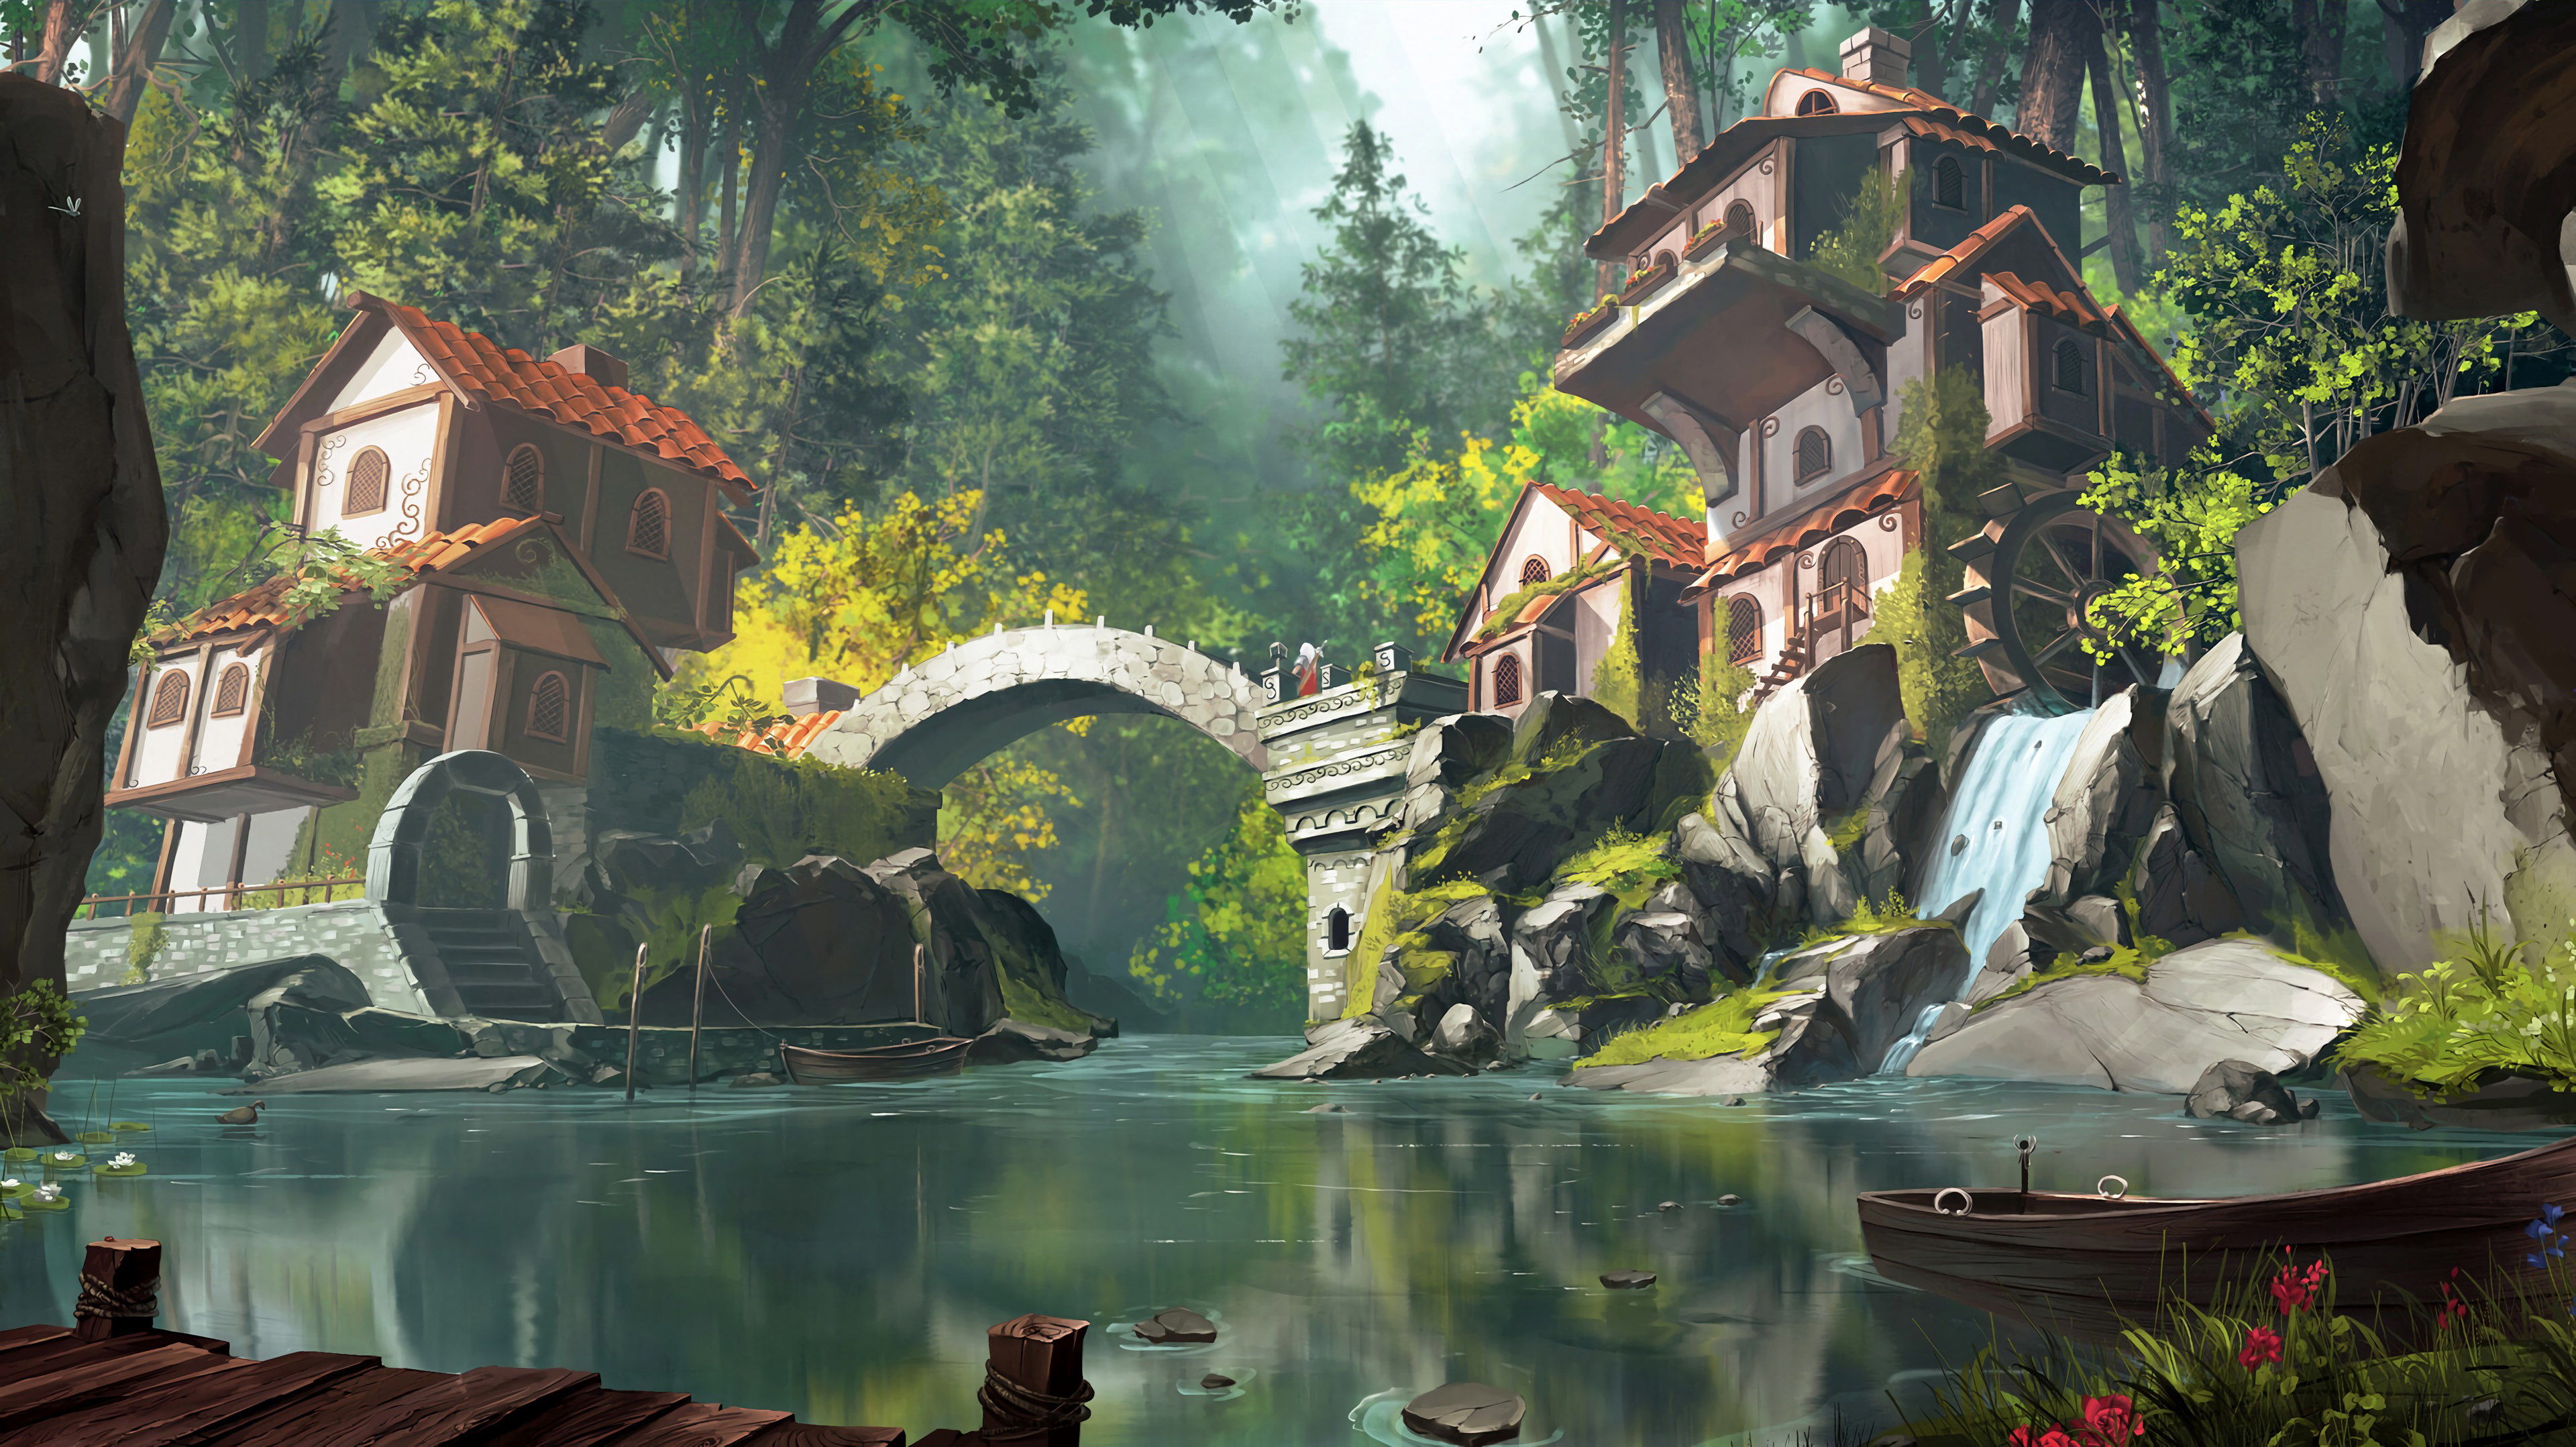 145184 free wallpaper 480x800 for phone, download images Stones, Art, Waterfall, Small House, Lodge 480x800 for mobile